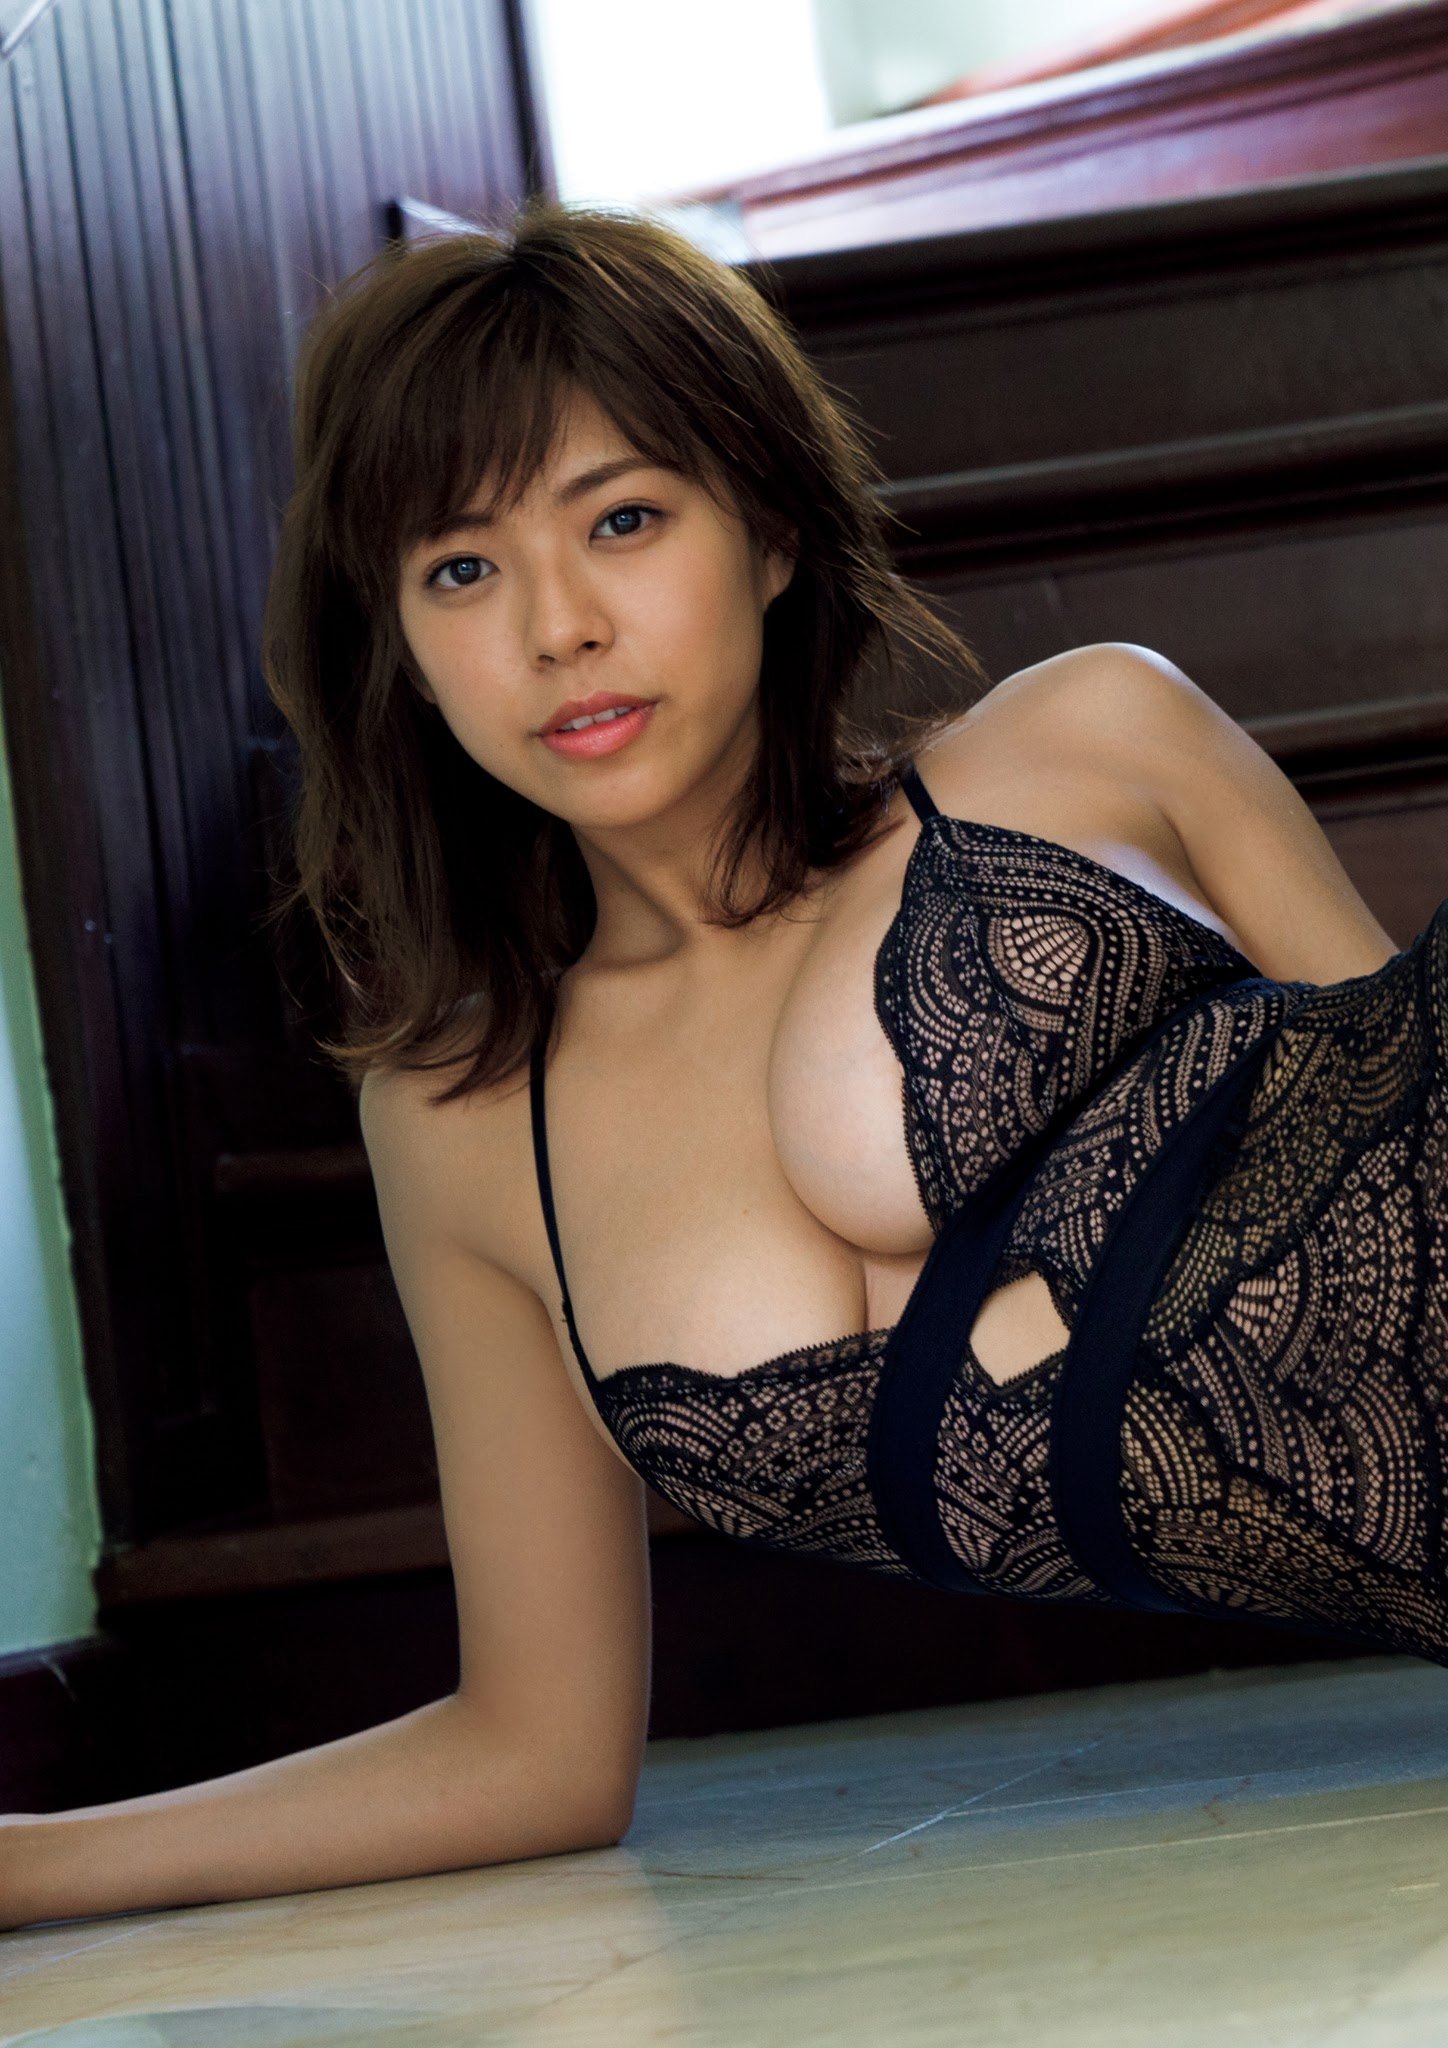 Super body of H cup Minami Wachi 2020 that exposes body and mind in tropical Thailand071